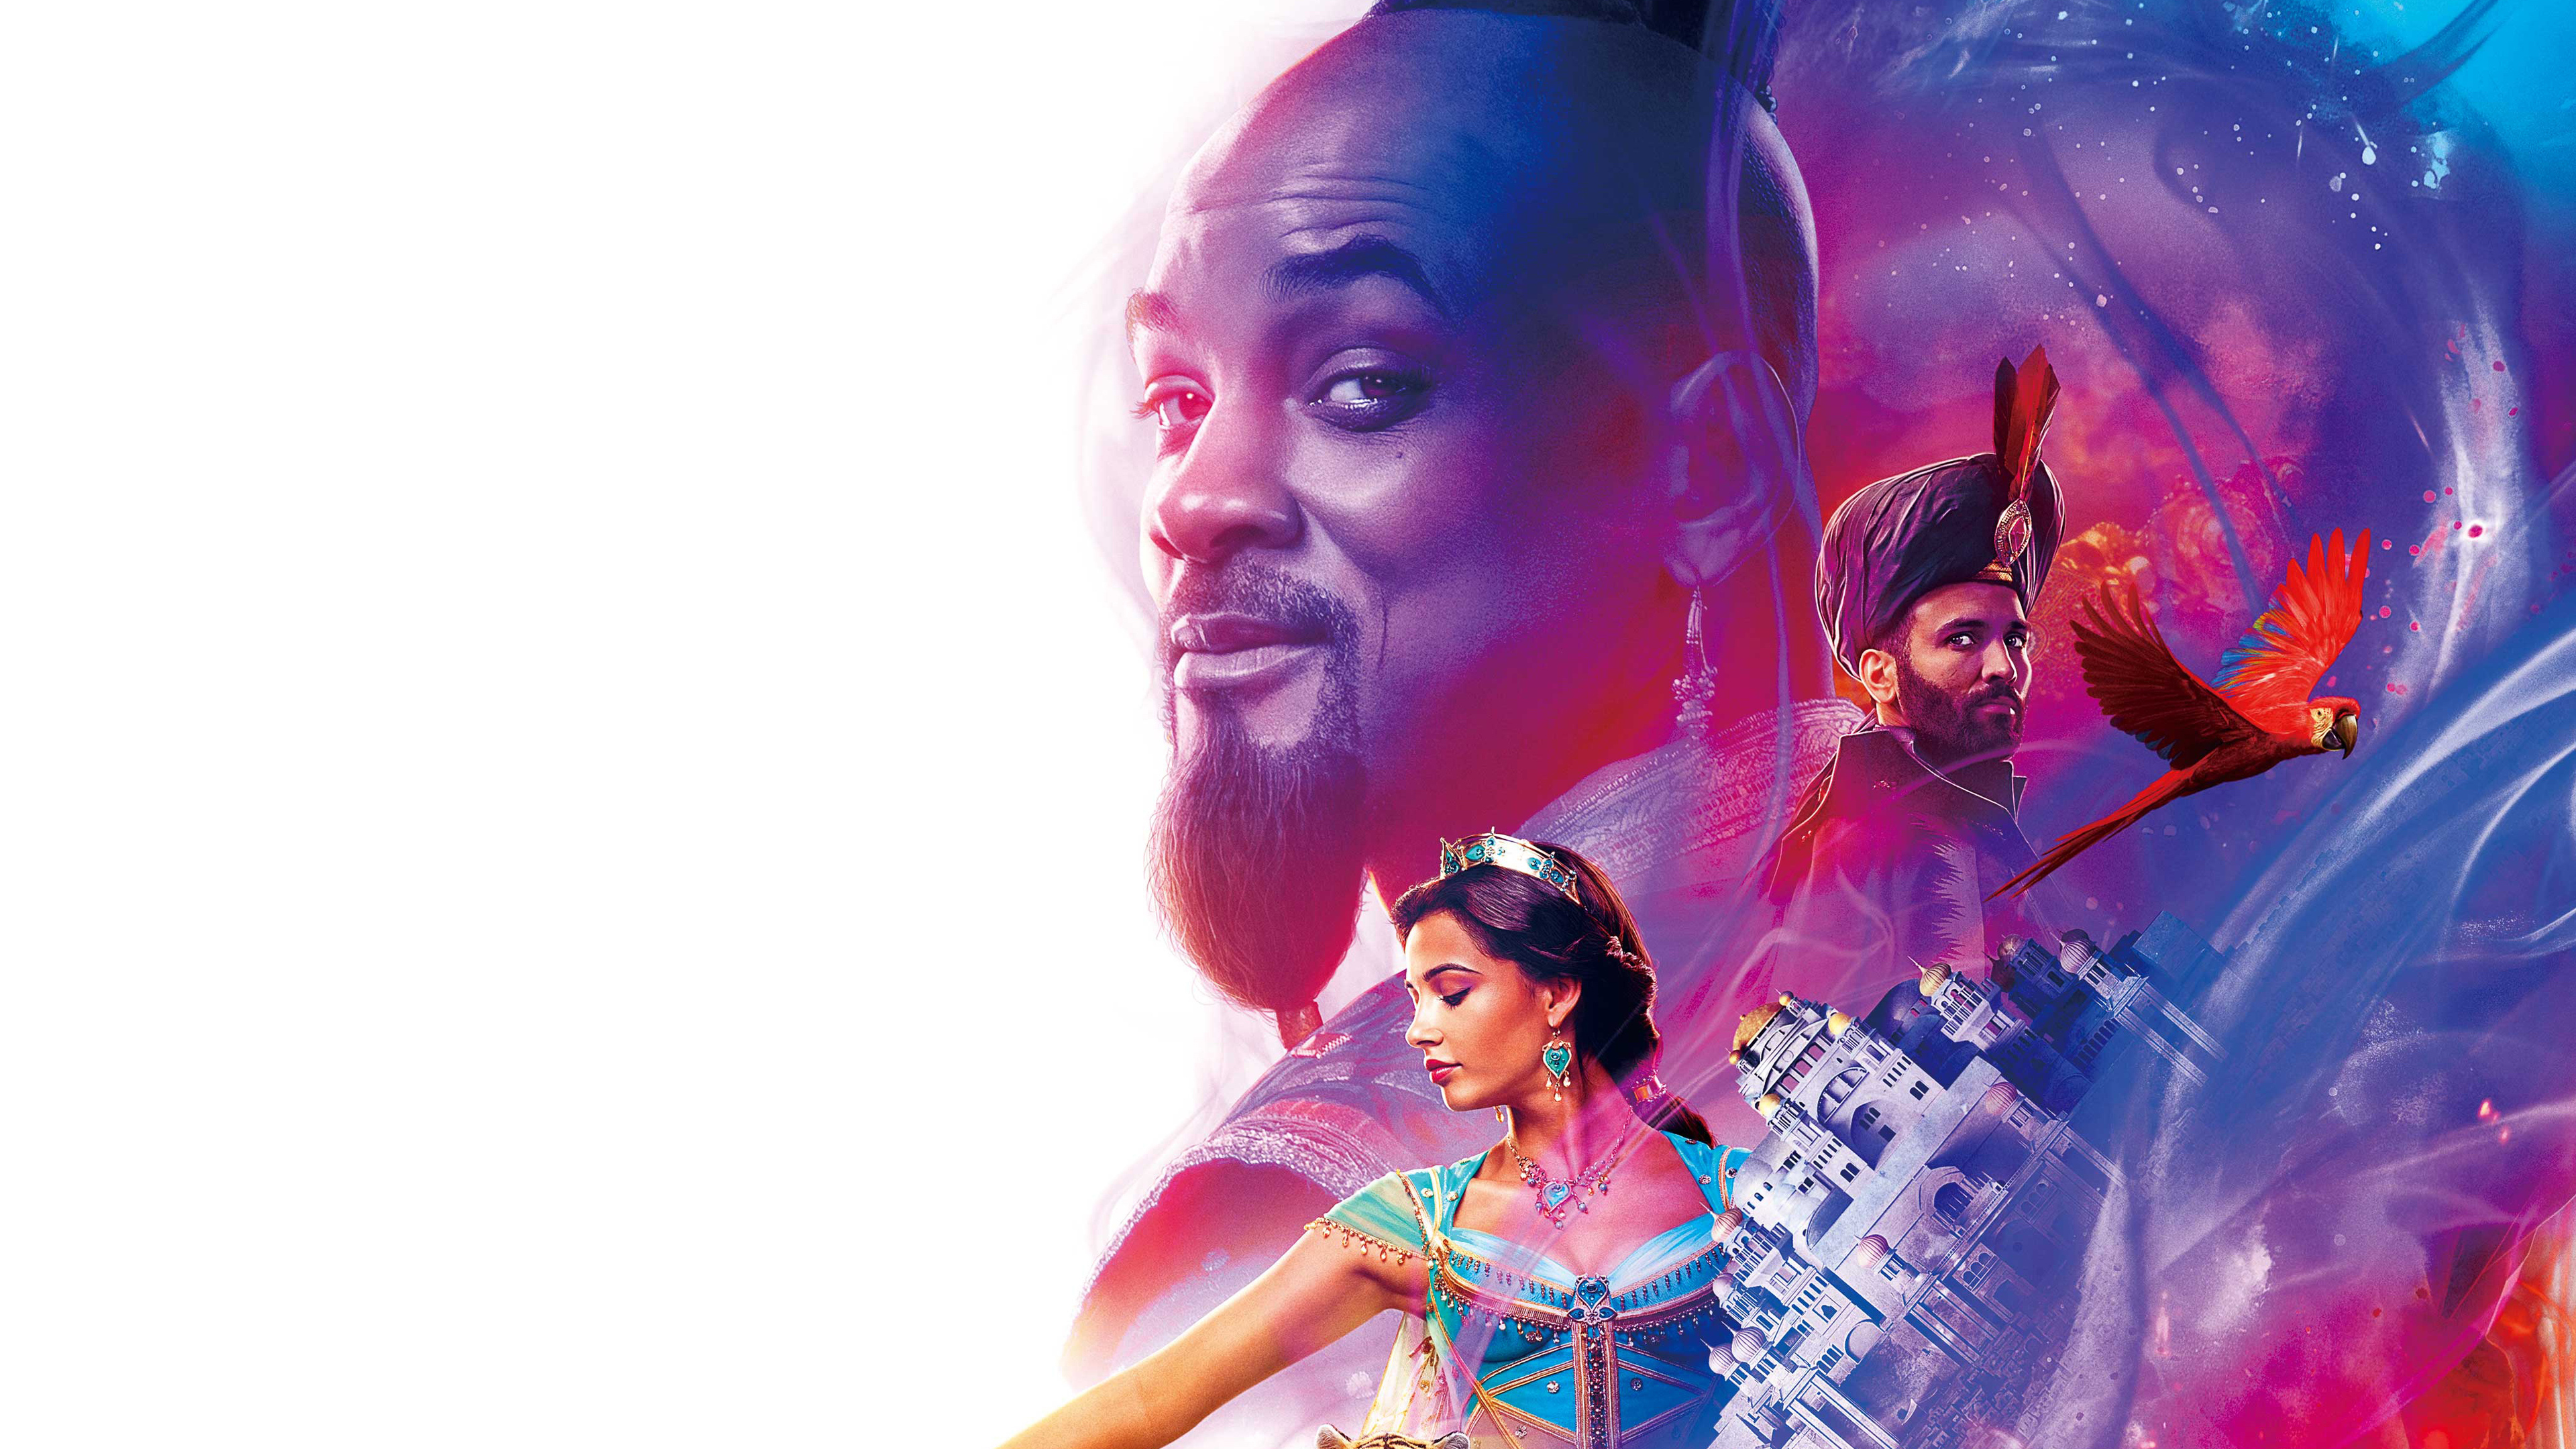 Movie Poster 2019: Aladdin Movie Poster 4k Poster Wallpapers, Movies